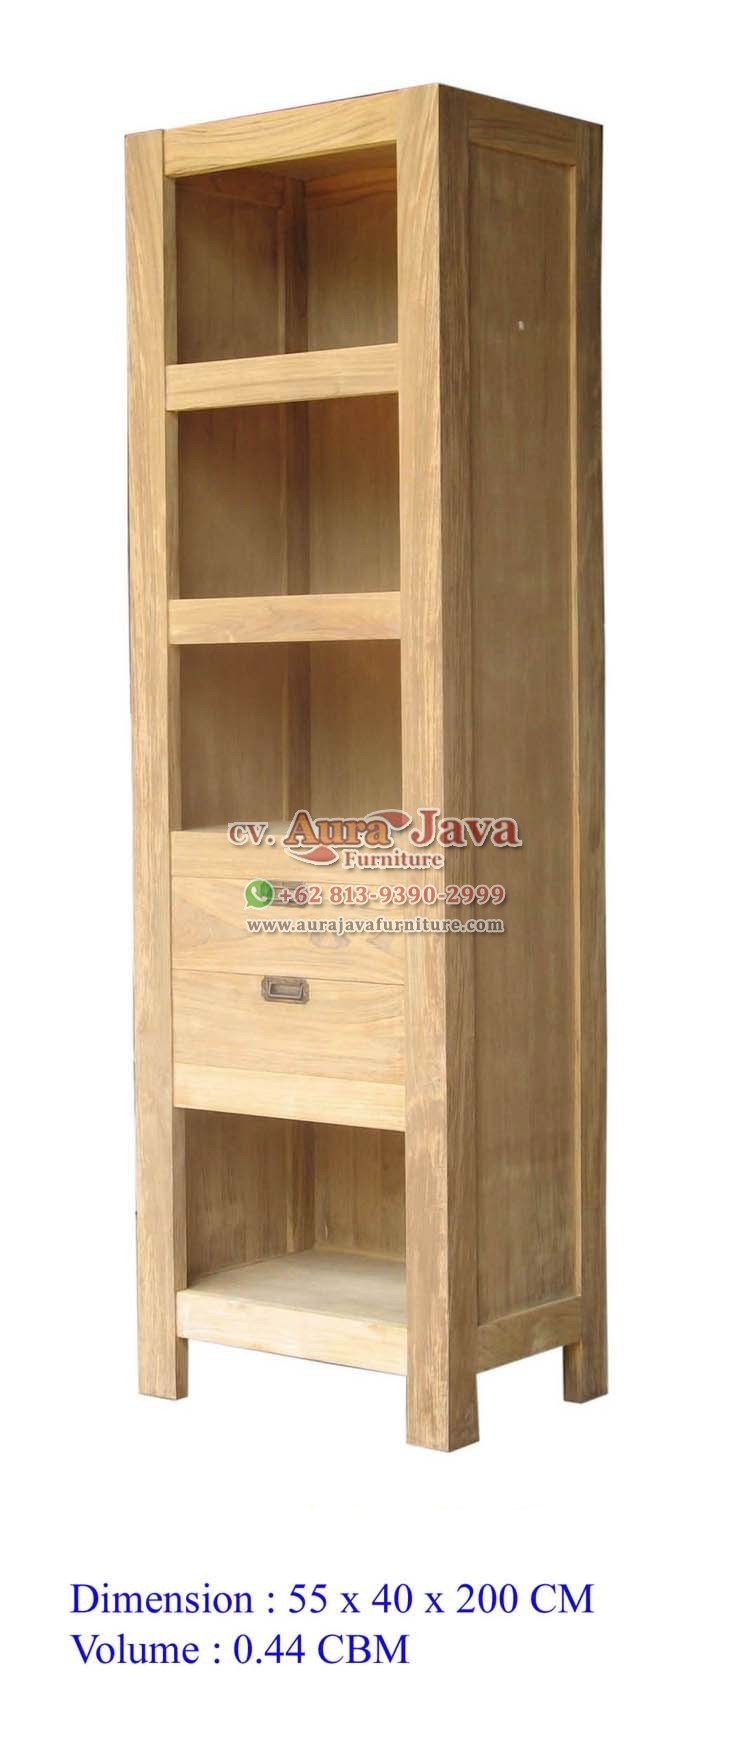 indonesia-teak-furniture-store-catalogue-showcase-furniture-aura-java-jepara_014